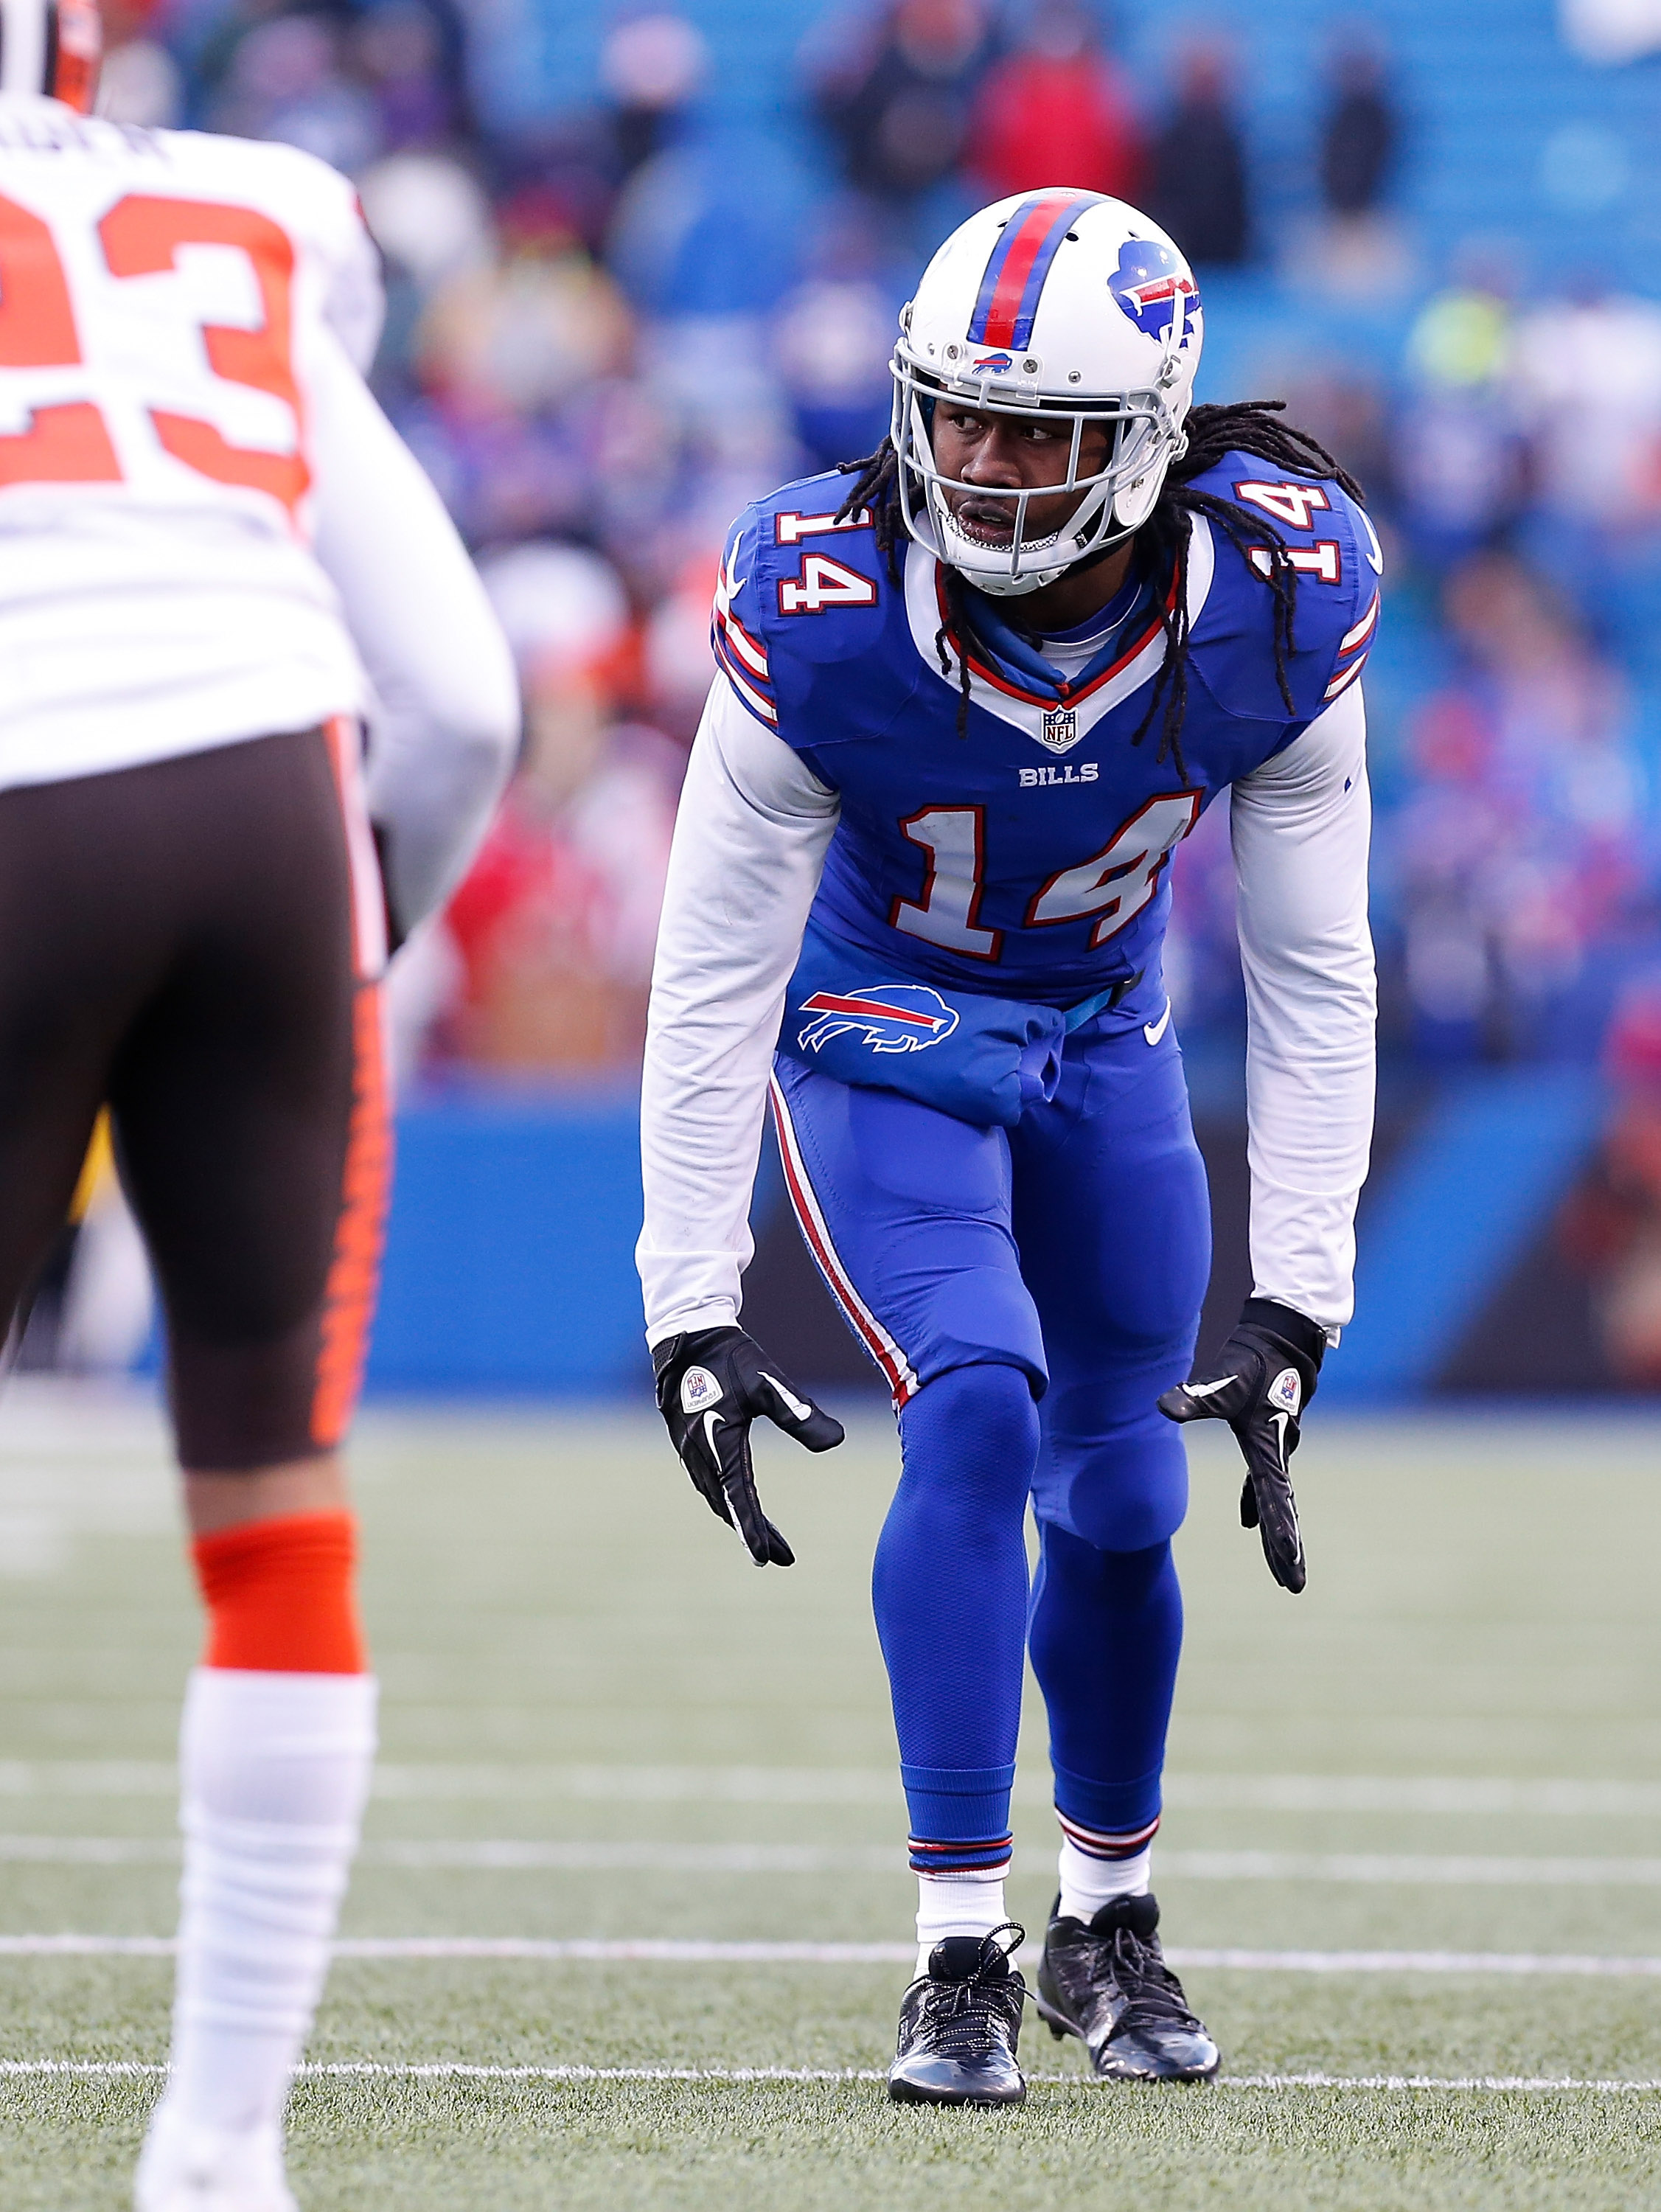 d3645e05d14 Why Bills WR Sammy Watkins can live up to the hype